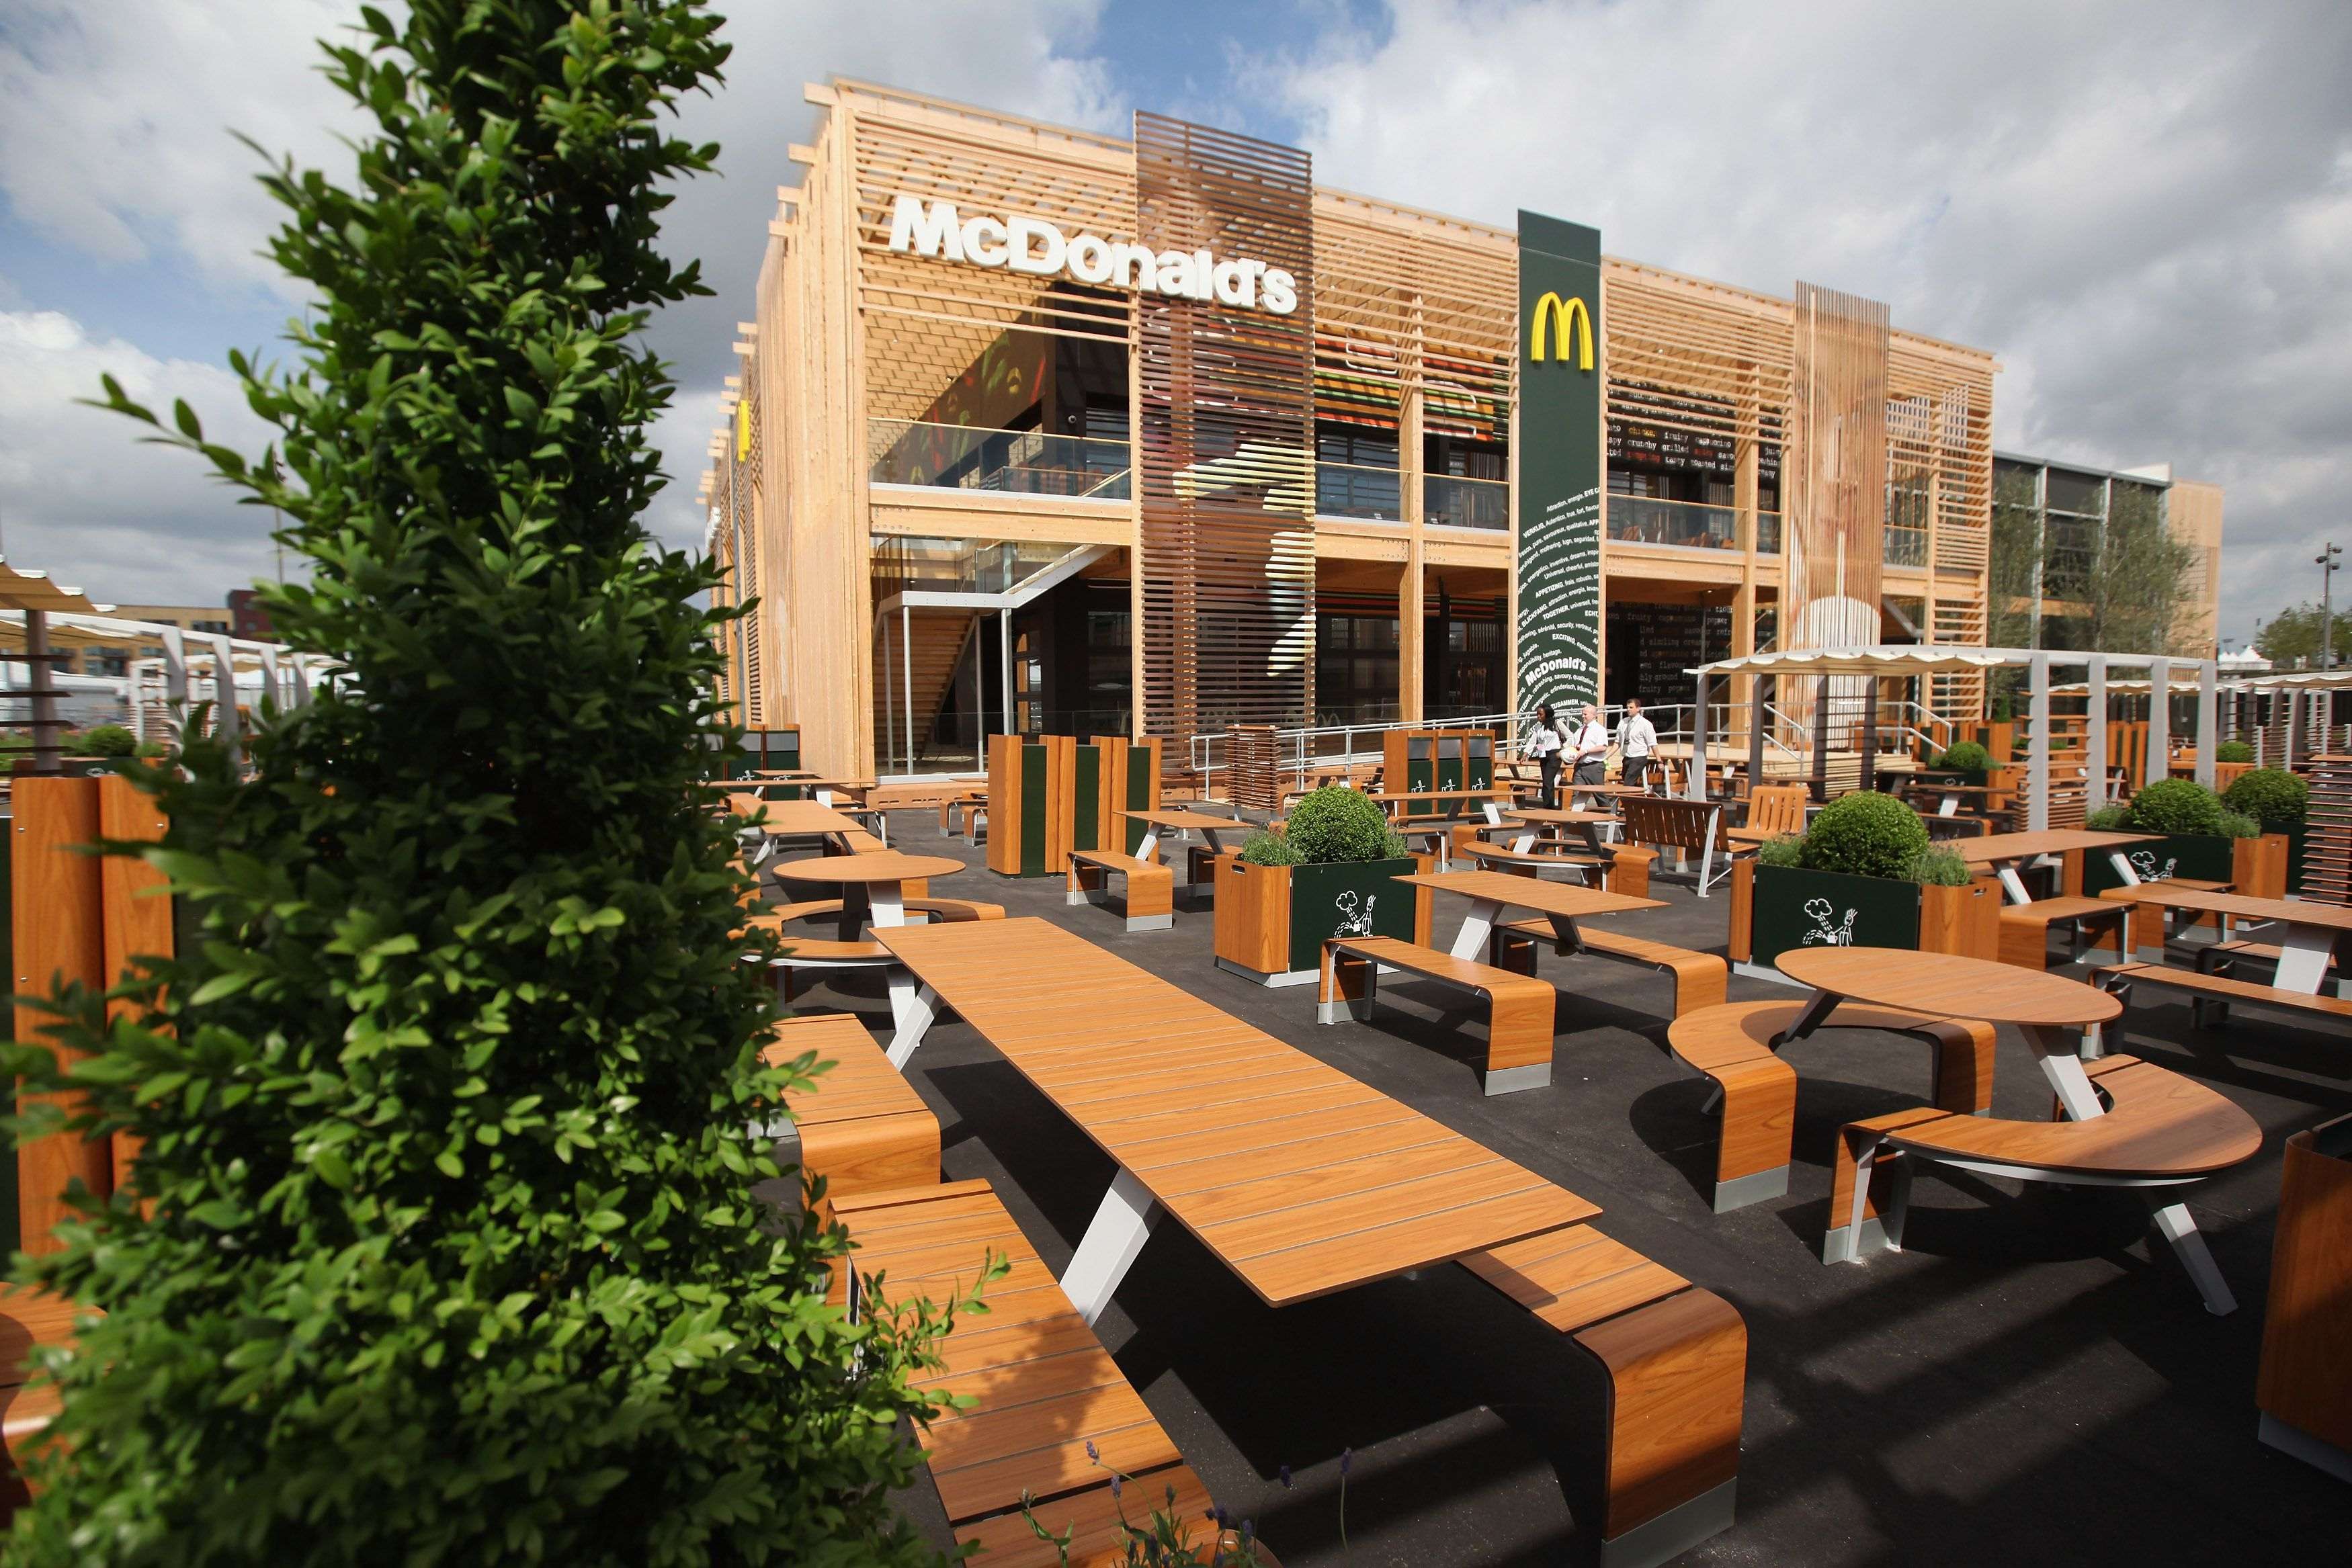 8 Amazing Mcdonalds Restaurants